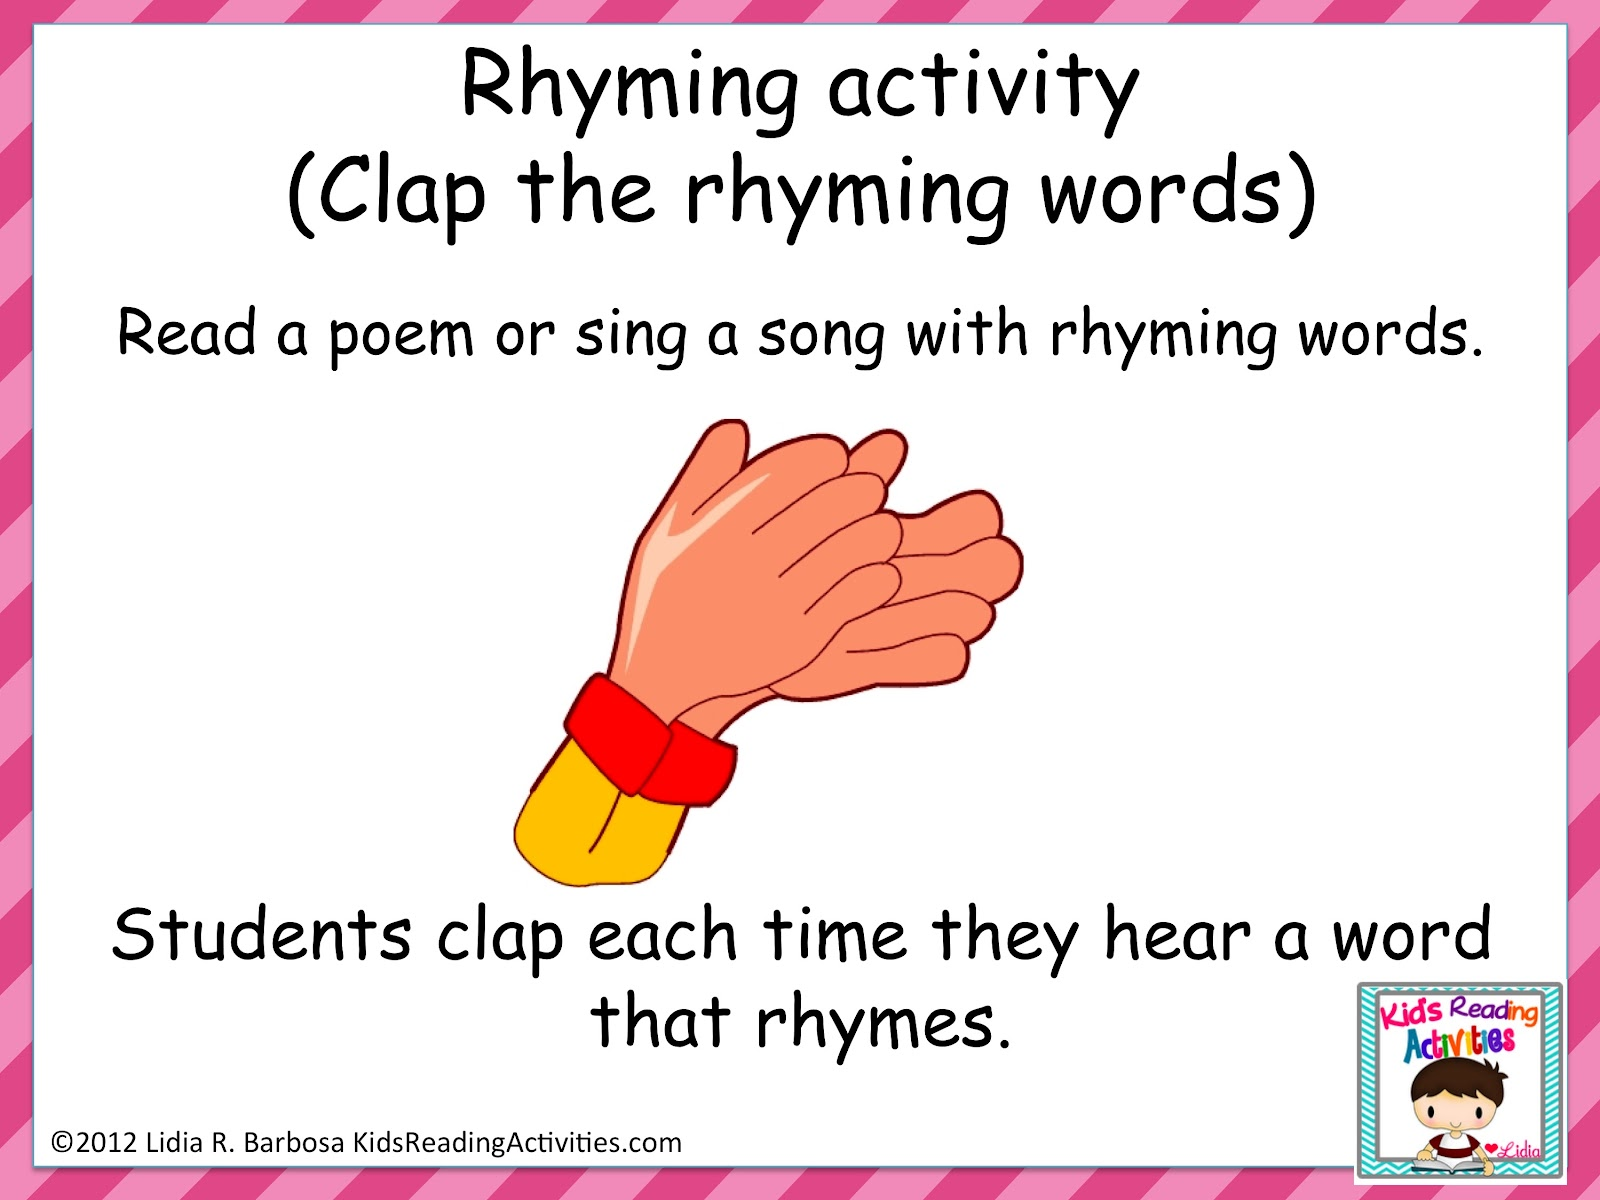 Worksheet Kindergarten Rhymes mrs miners kindergarten monkey business rhyme time in 3 read a poem or sing song with rhymes students can clap stand when they hear rhyming word